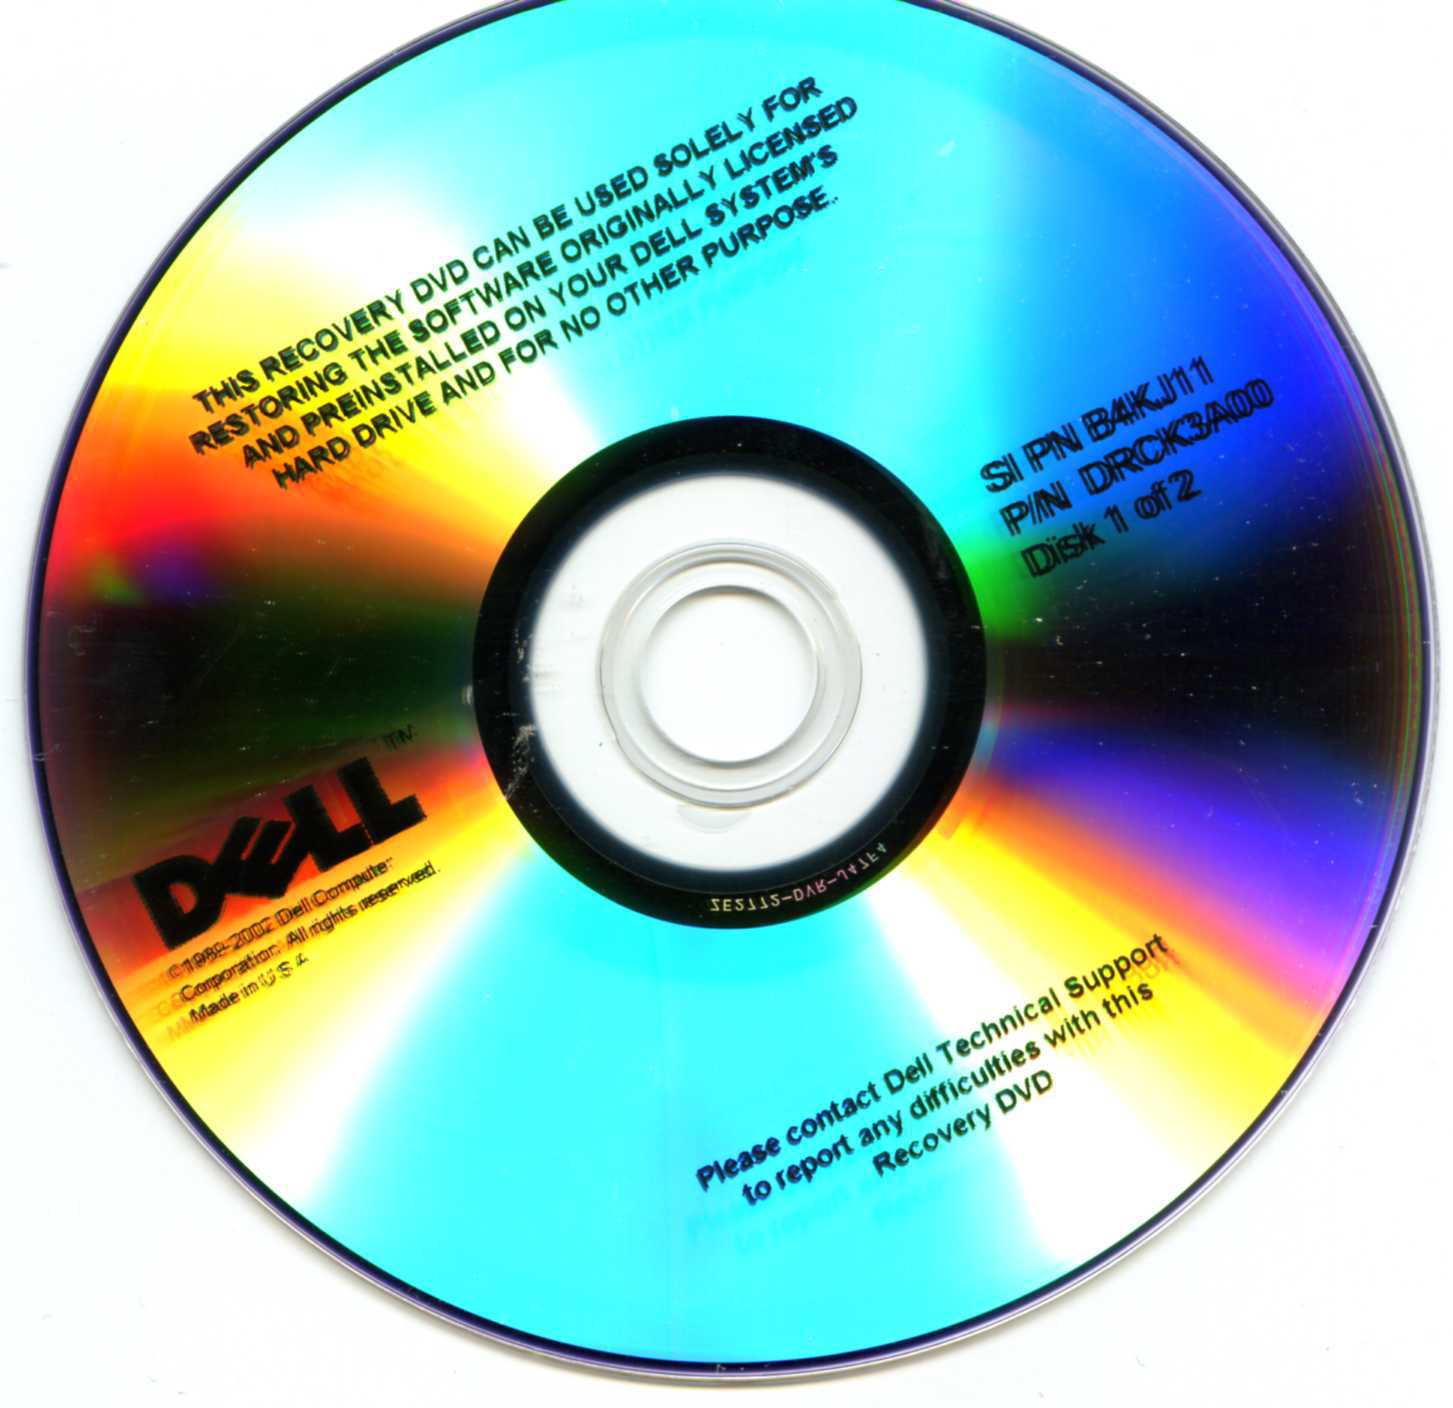 Win7 Enterprise - Two Disk Set and 50 similar items